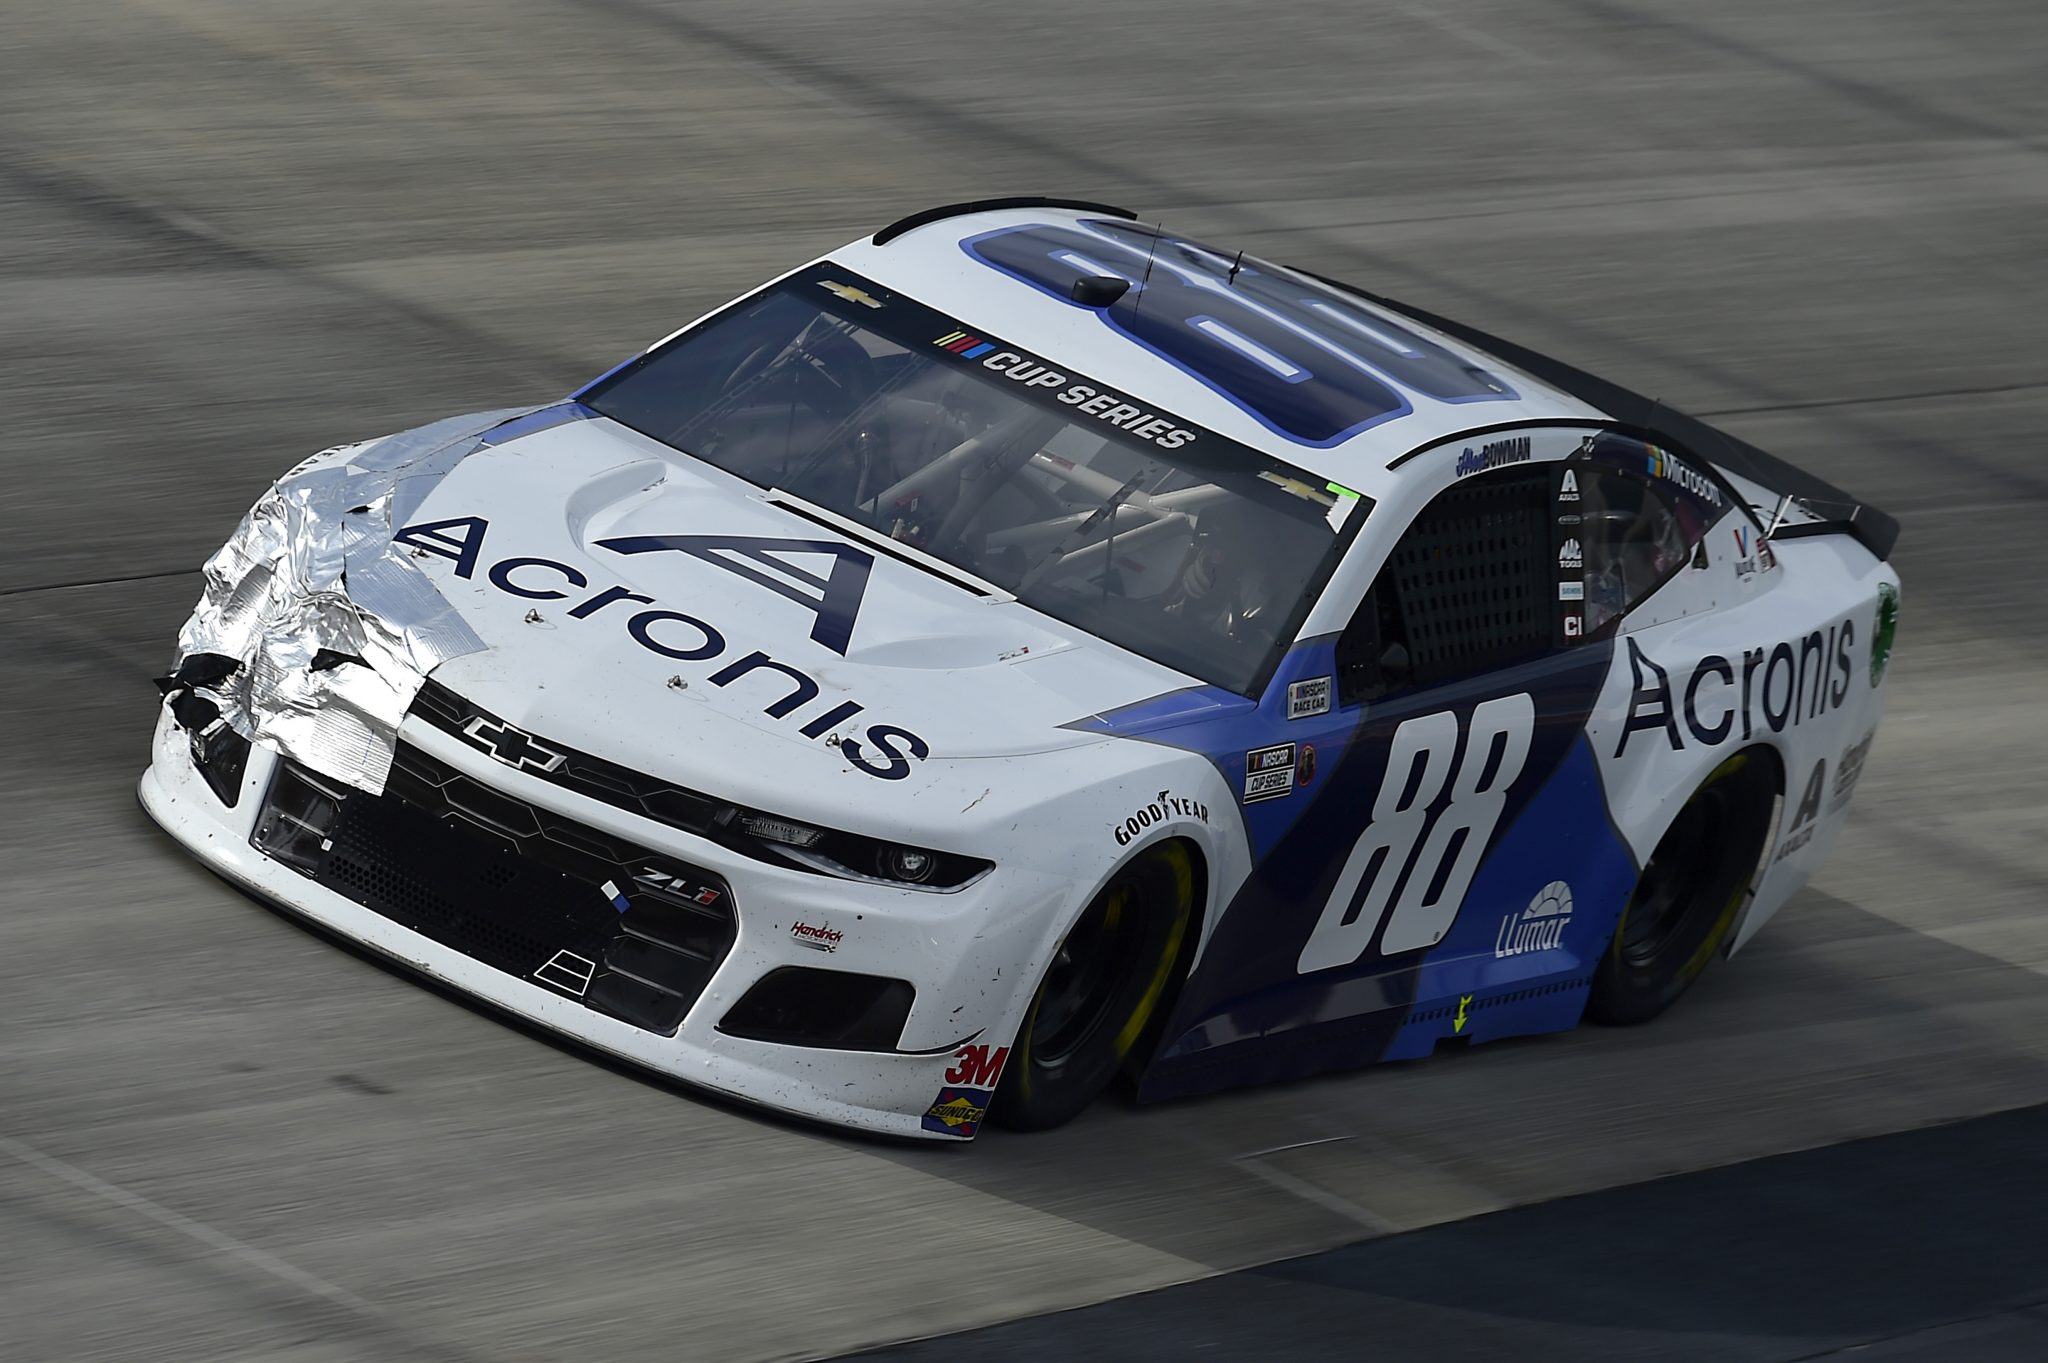 DOVER, DELAWARE - AUGUST 22: Alex Bowman, driver of the #88 Acronis Chevrolet, drives during the NASCAR Cup Series Drydene 311 at Dover International Speedway on August 22, 2020 in Dover, Delaware. (Photo by Jared C. Tilton/Getty Images) | Getty Images